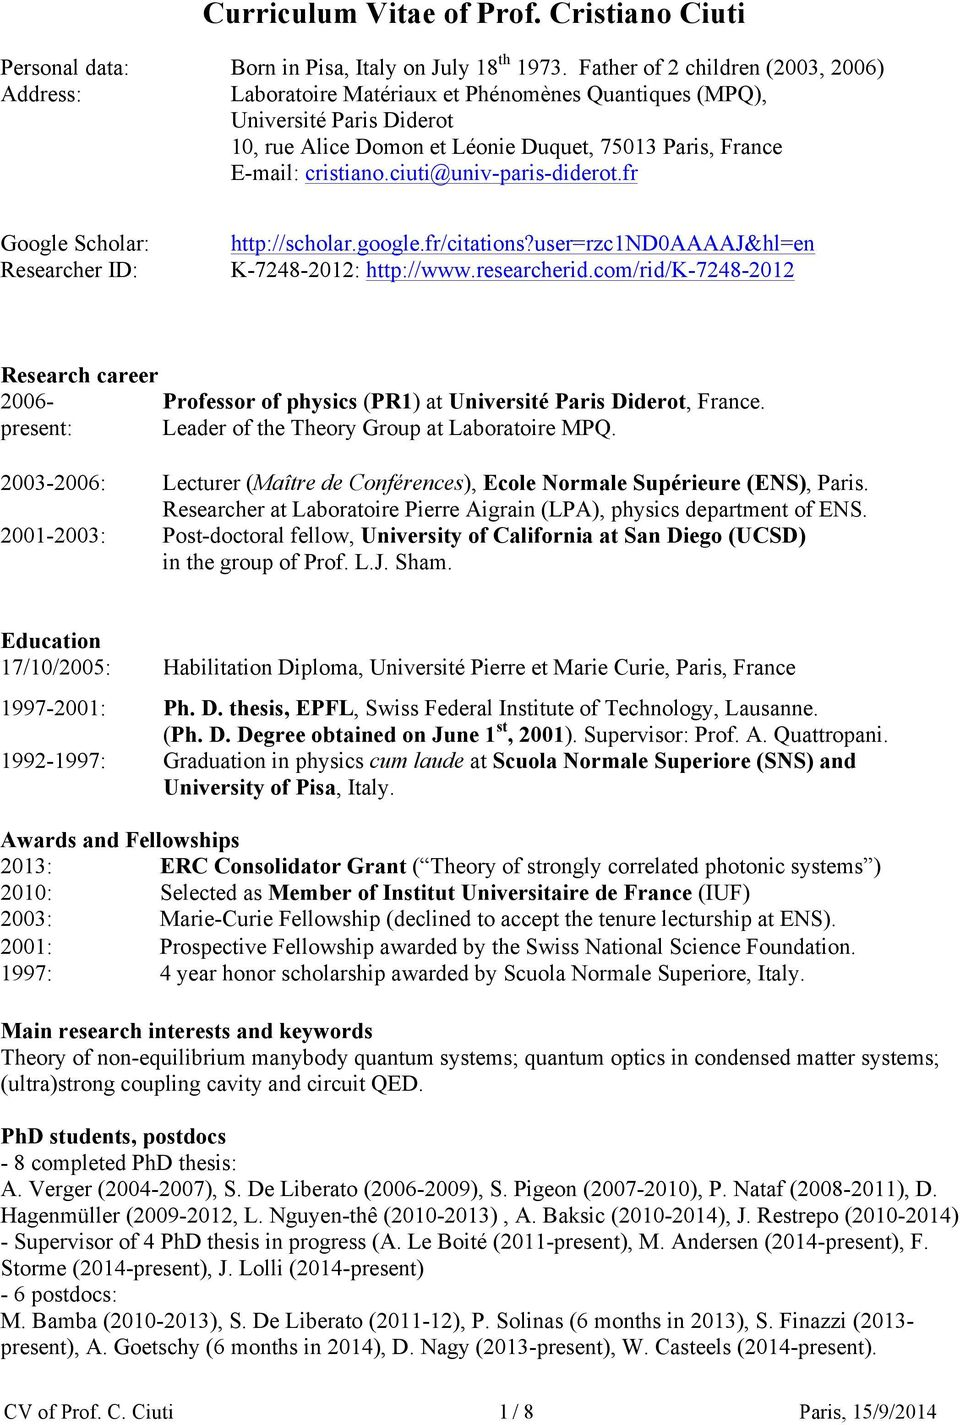 ciuti@univ-paris-diderot.fr Google Scholar: Researcher ID: http://scholar.google.fr/citations?user=rzc1nd0aaaaj&hl=en K-7248-2012: http://www.researcherid.